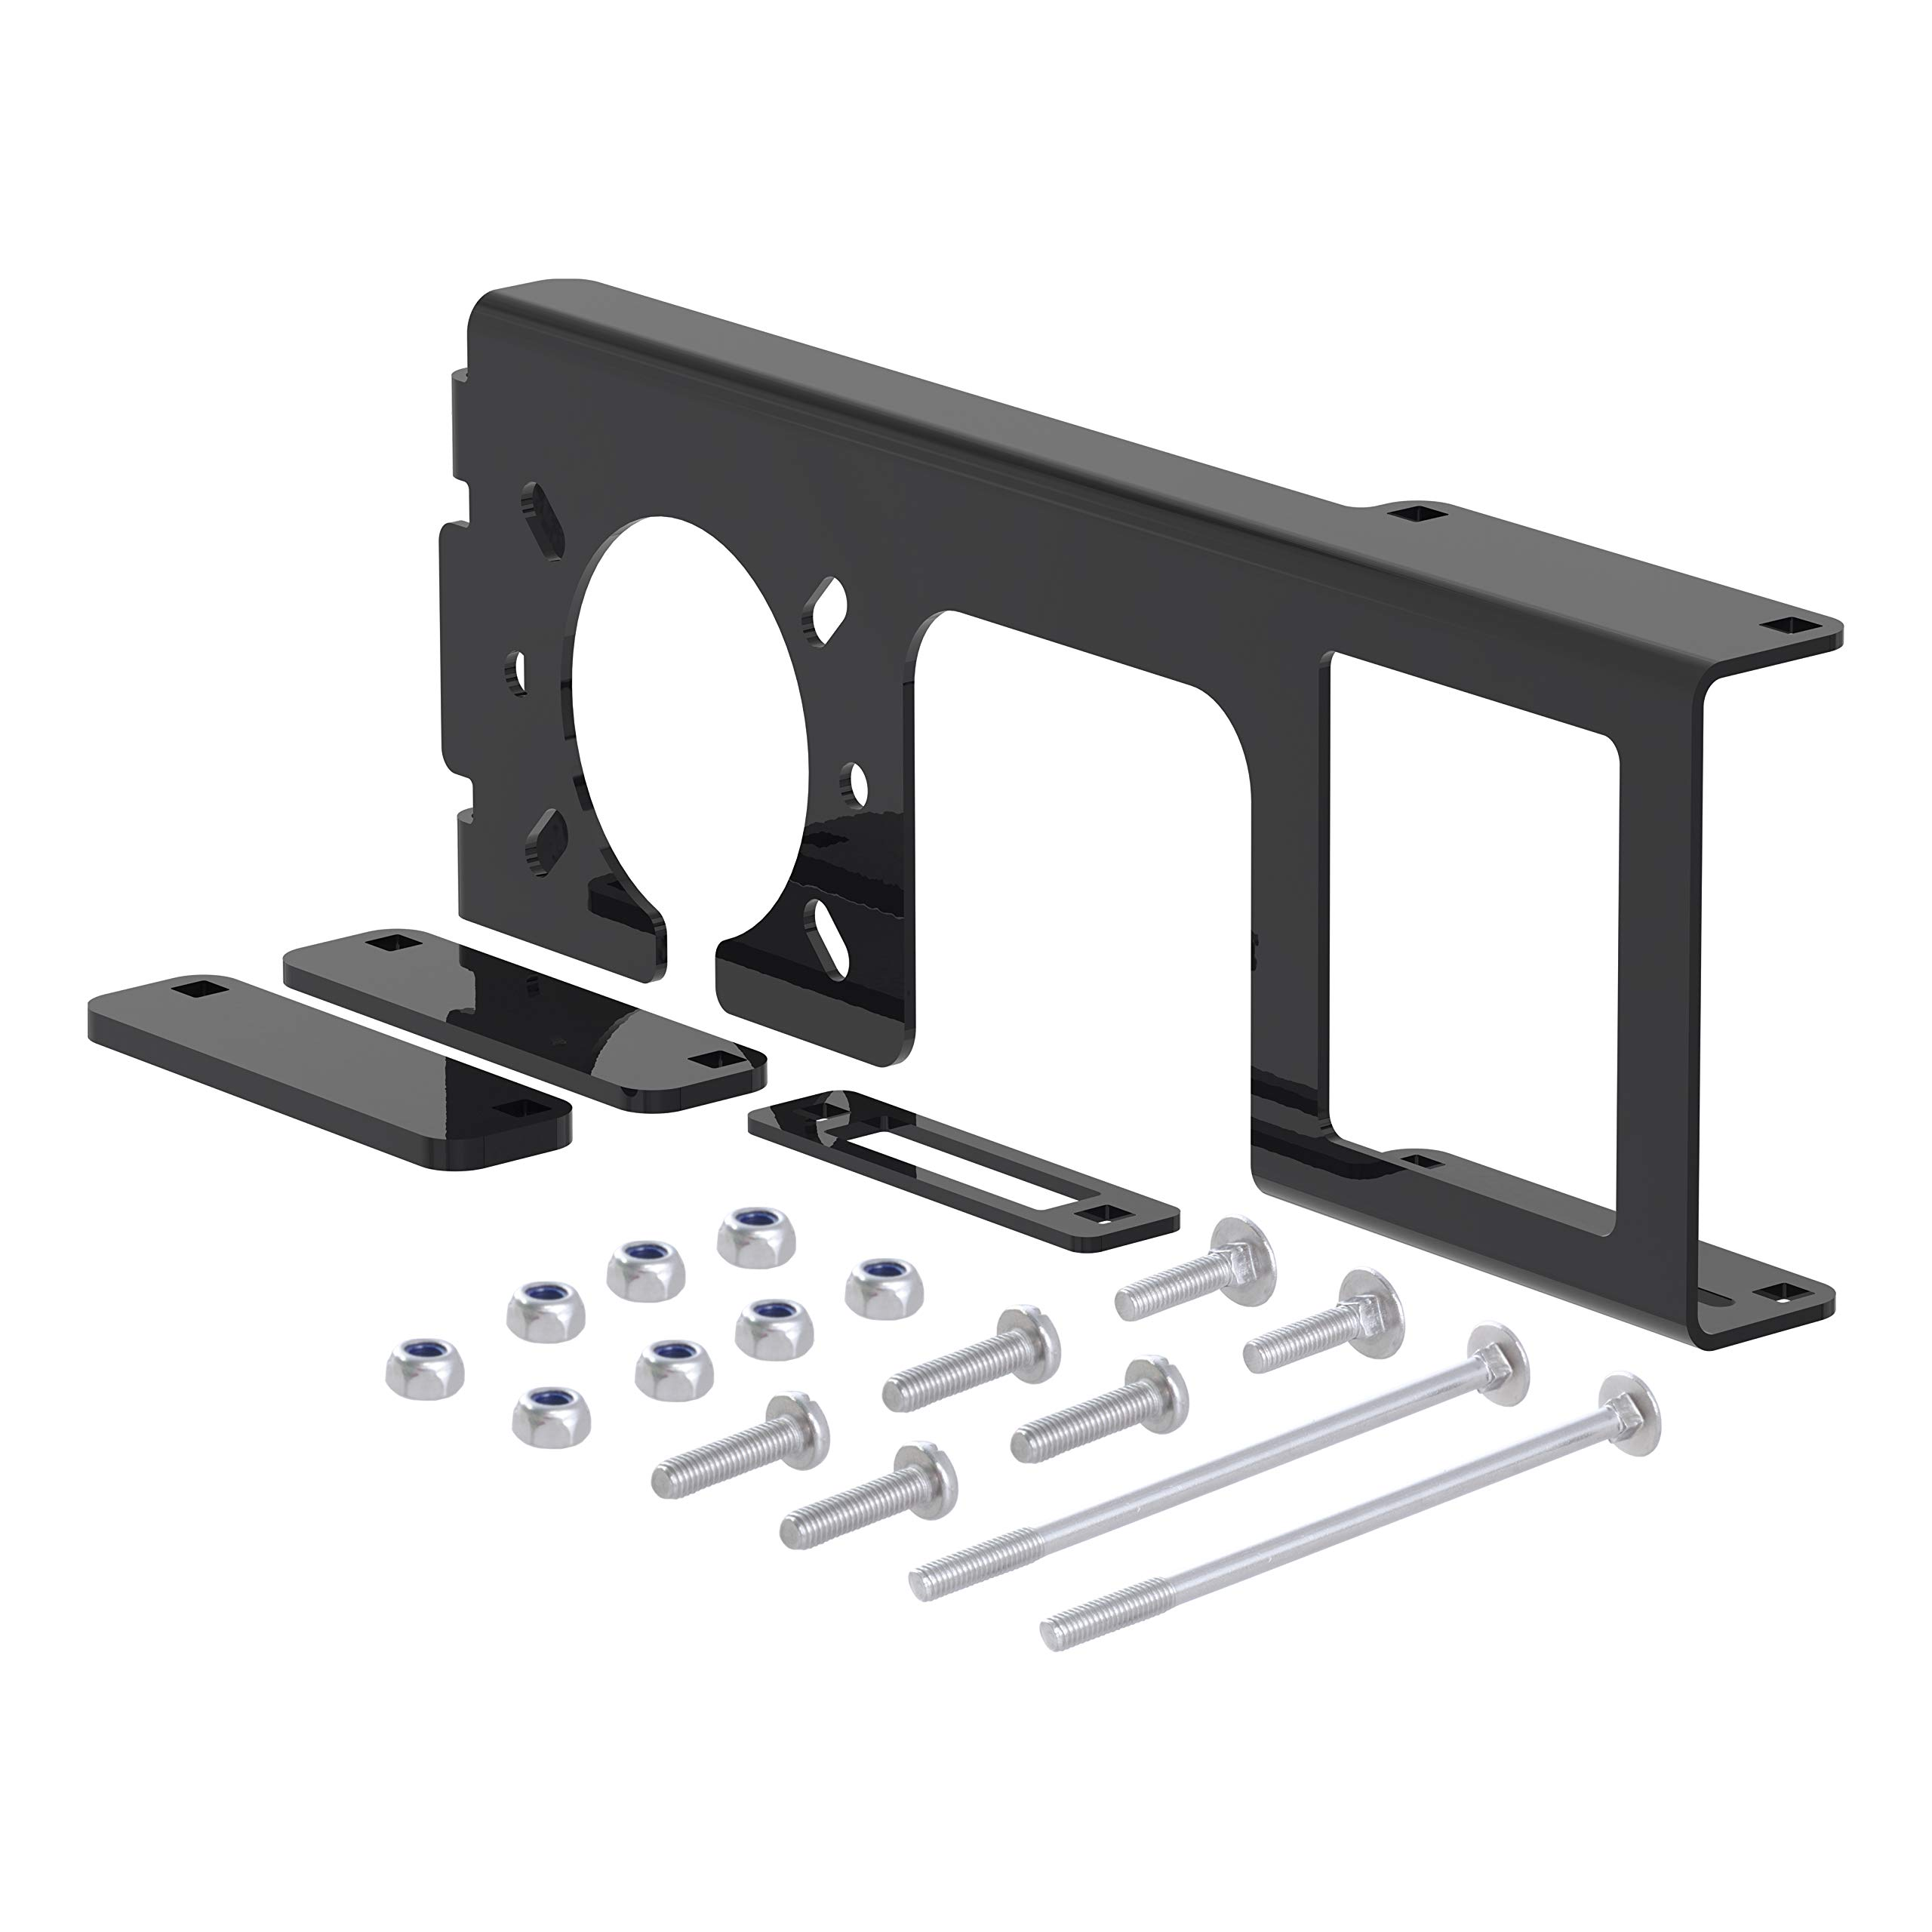 CURT 58000 Easy-Mount Vehicle Trailer Wiring Harness Connector Mounting Bracket for 4-Way or 5-Way Flat and 6-Way or 7-Way Round, Fits 2-Inch Receiver by CURT